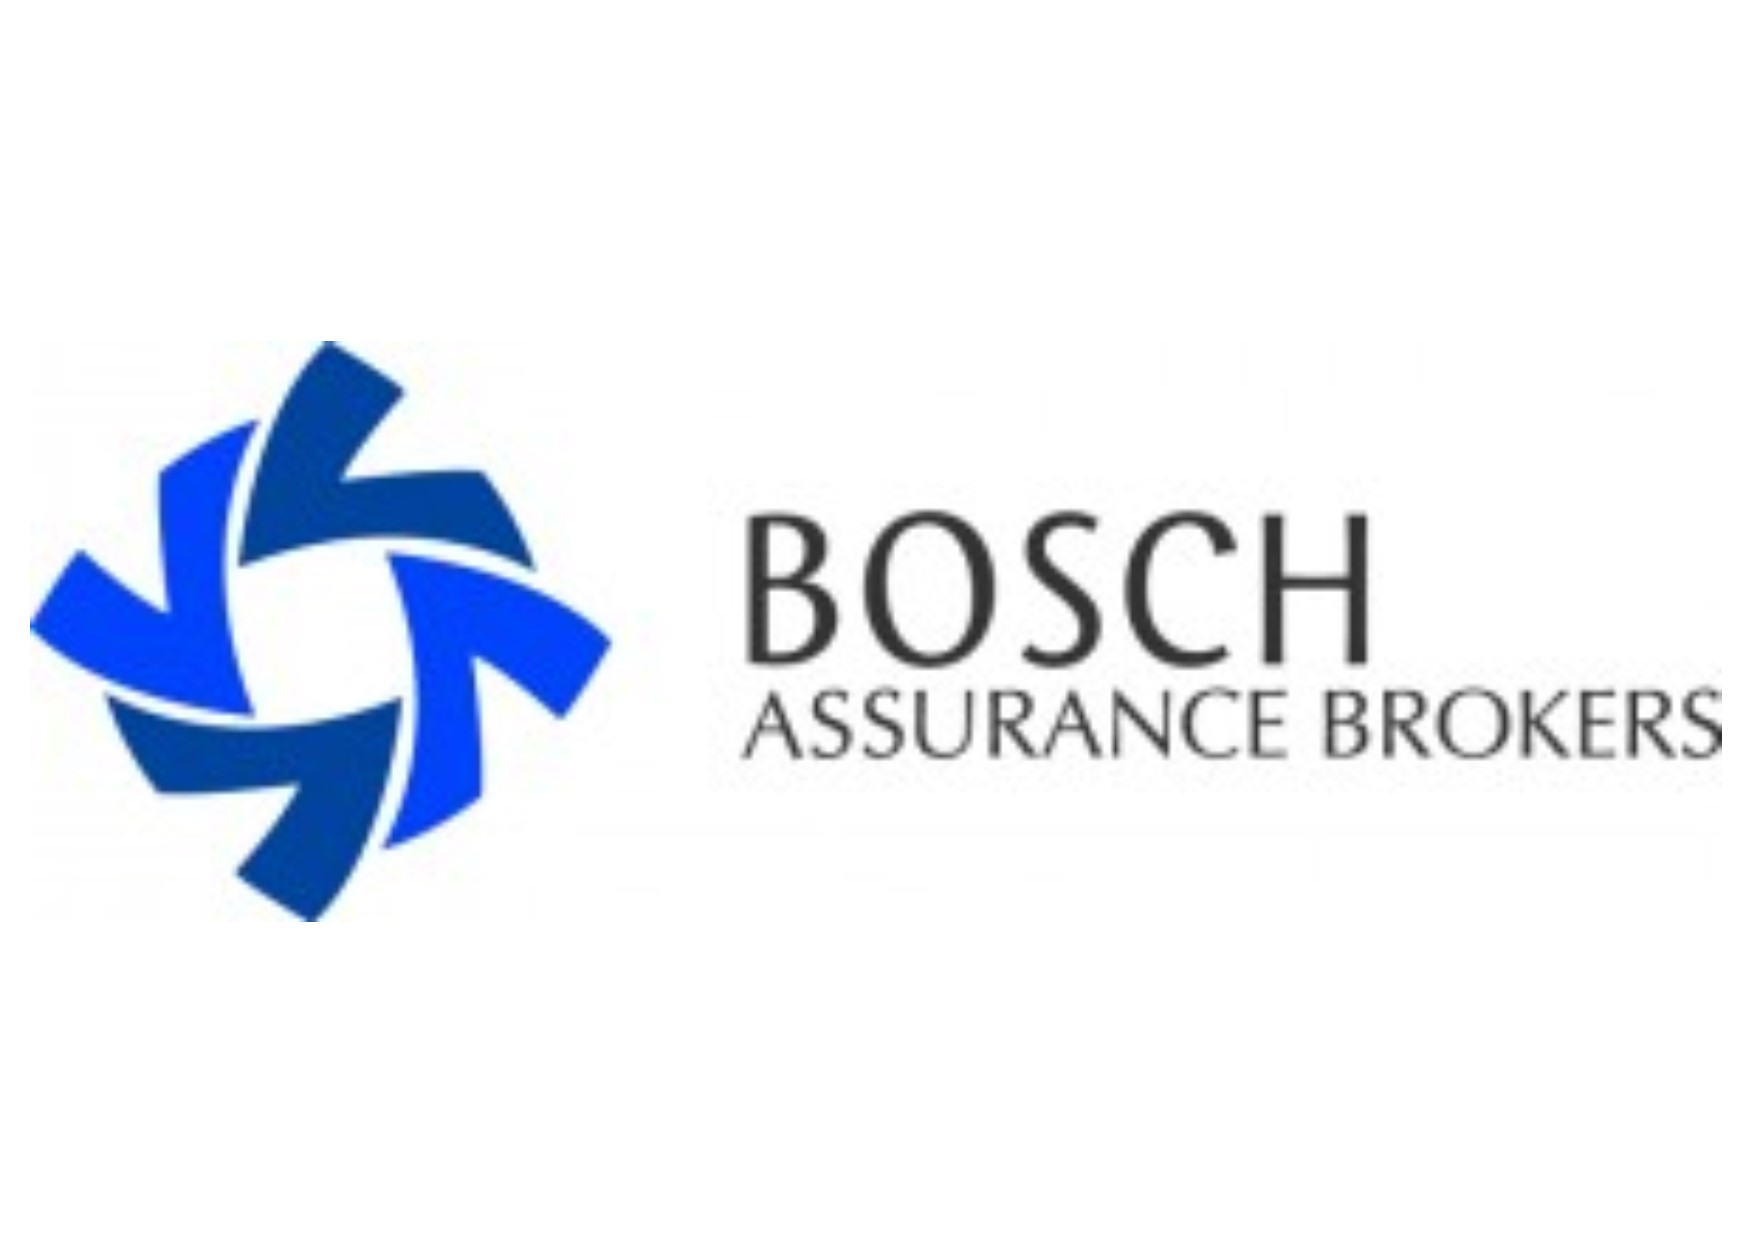 Bosch Assurance Brokers